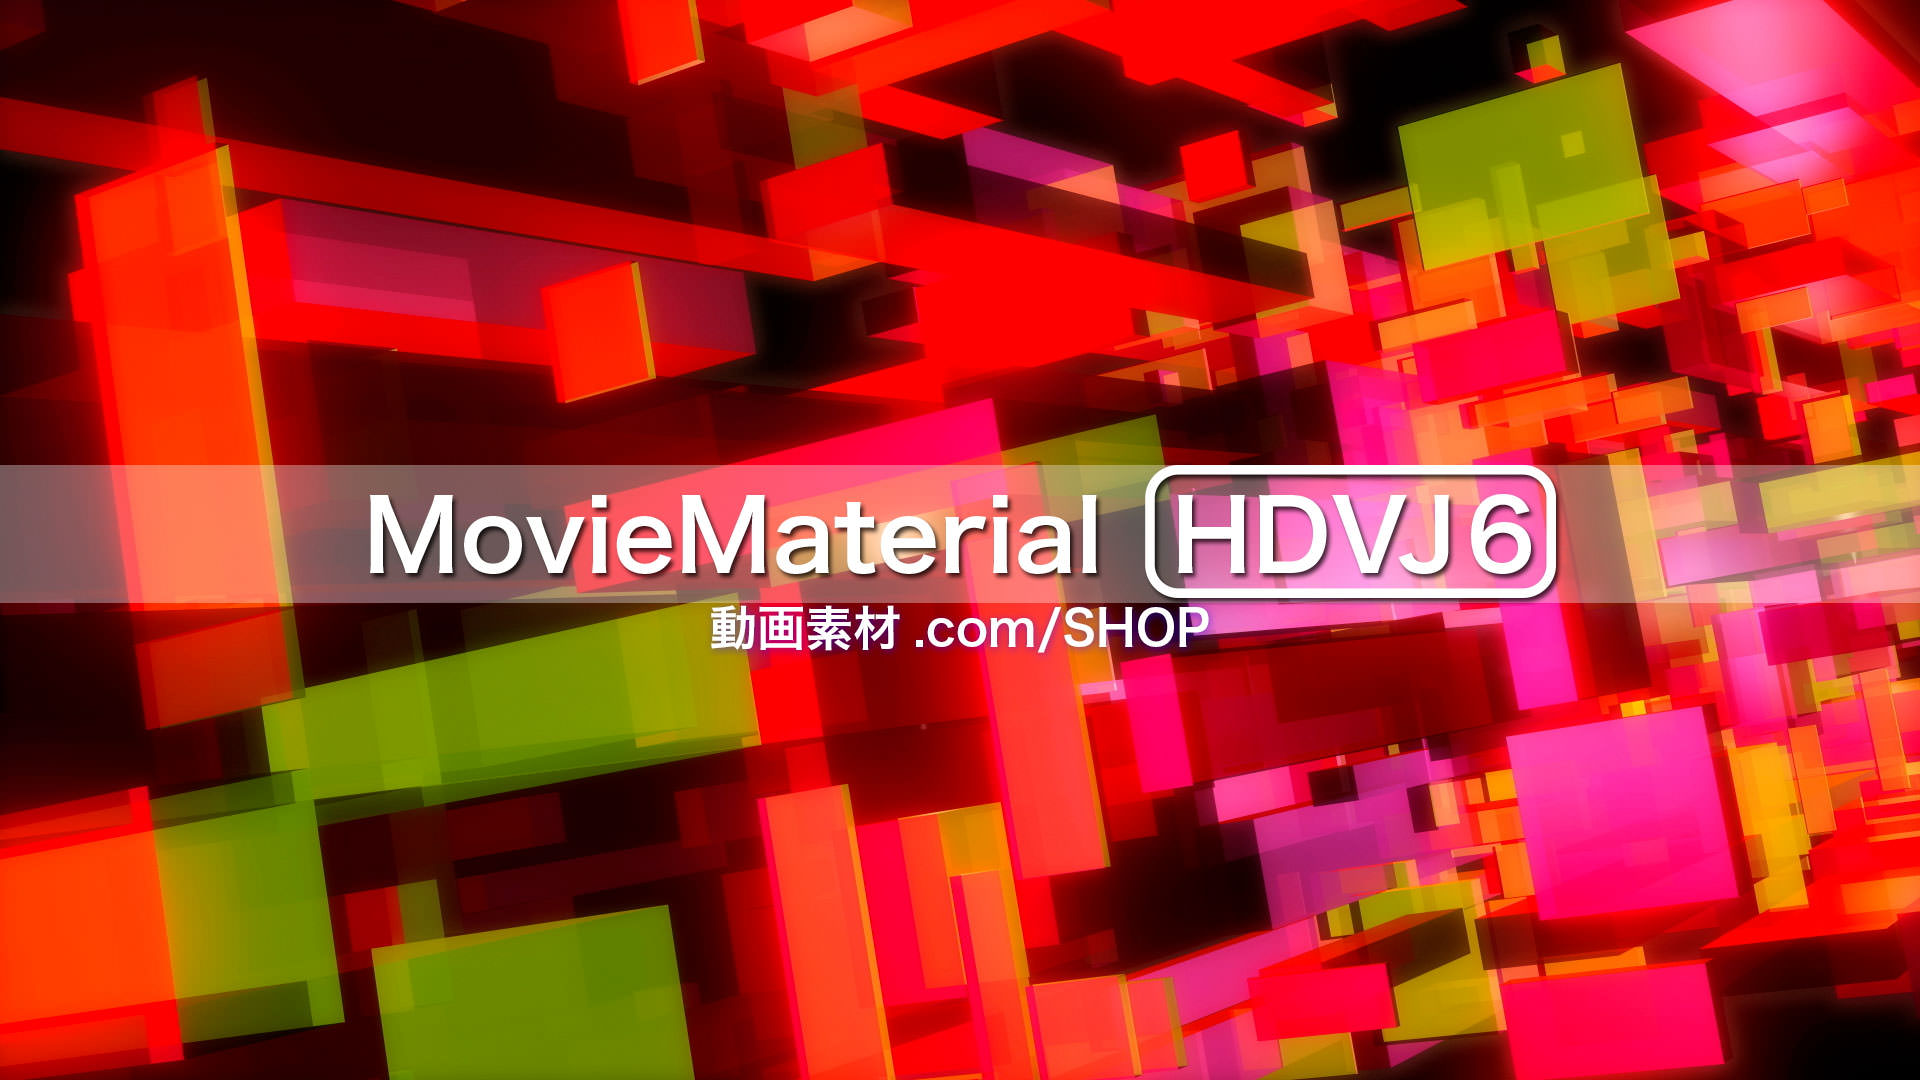 【MovieMaterial HDVJ6】フルハイビジョン動画素材集32